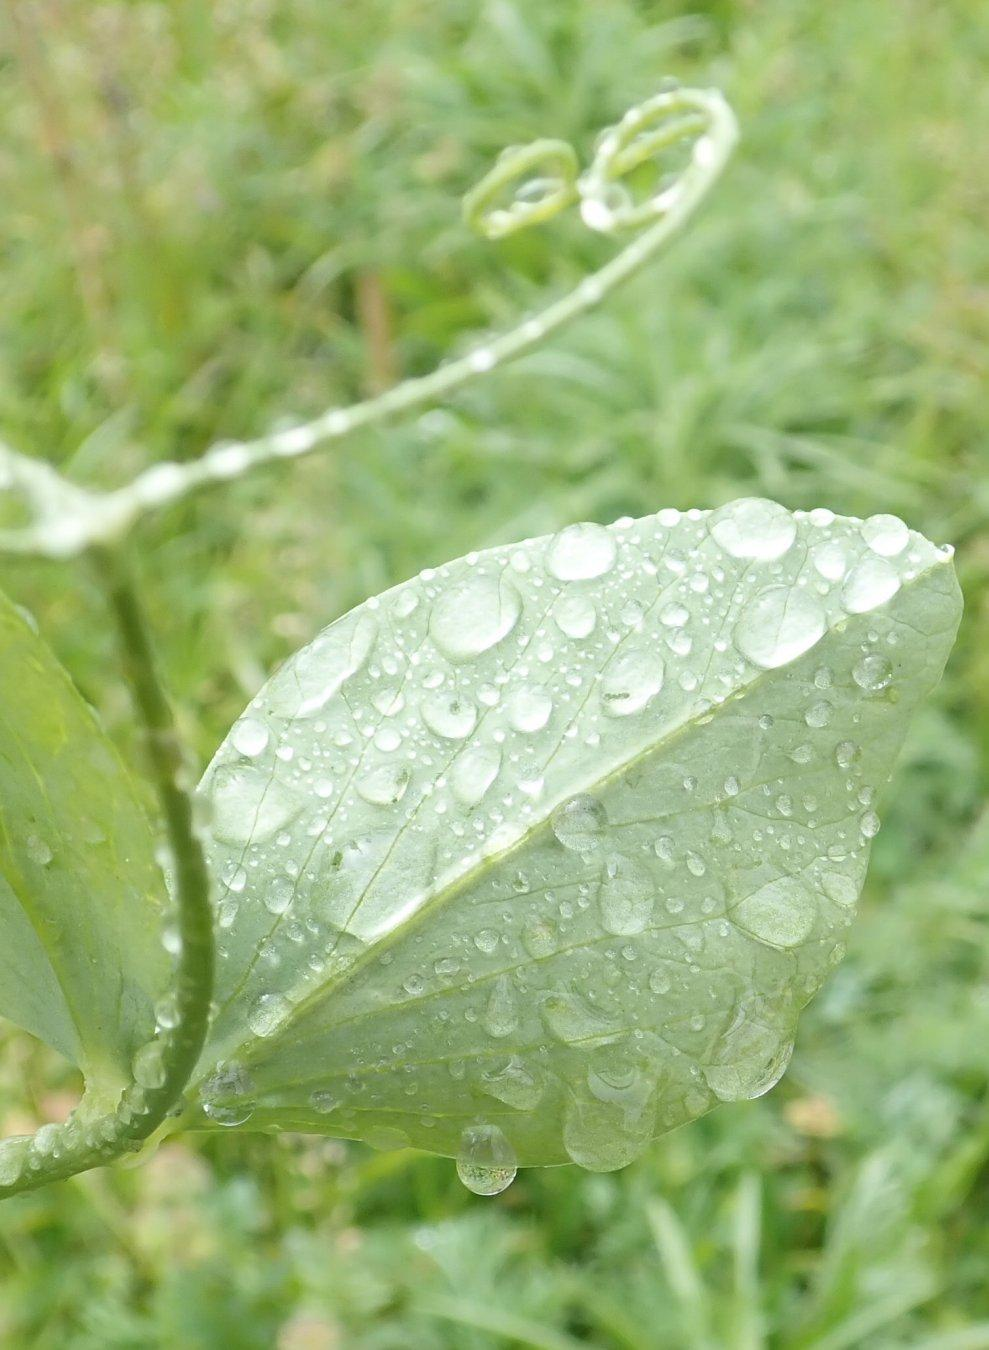 Rain Drops on Bean Leaf with Tendril